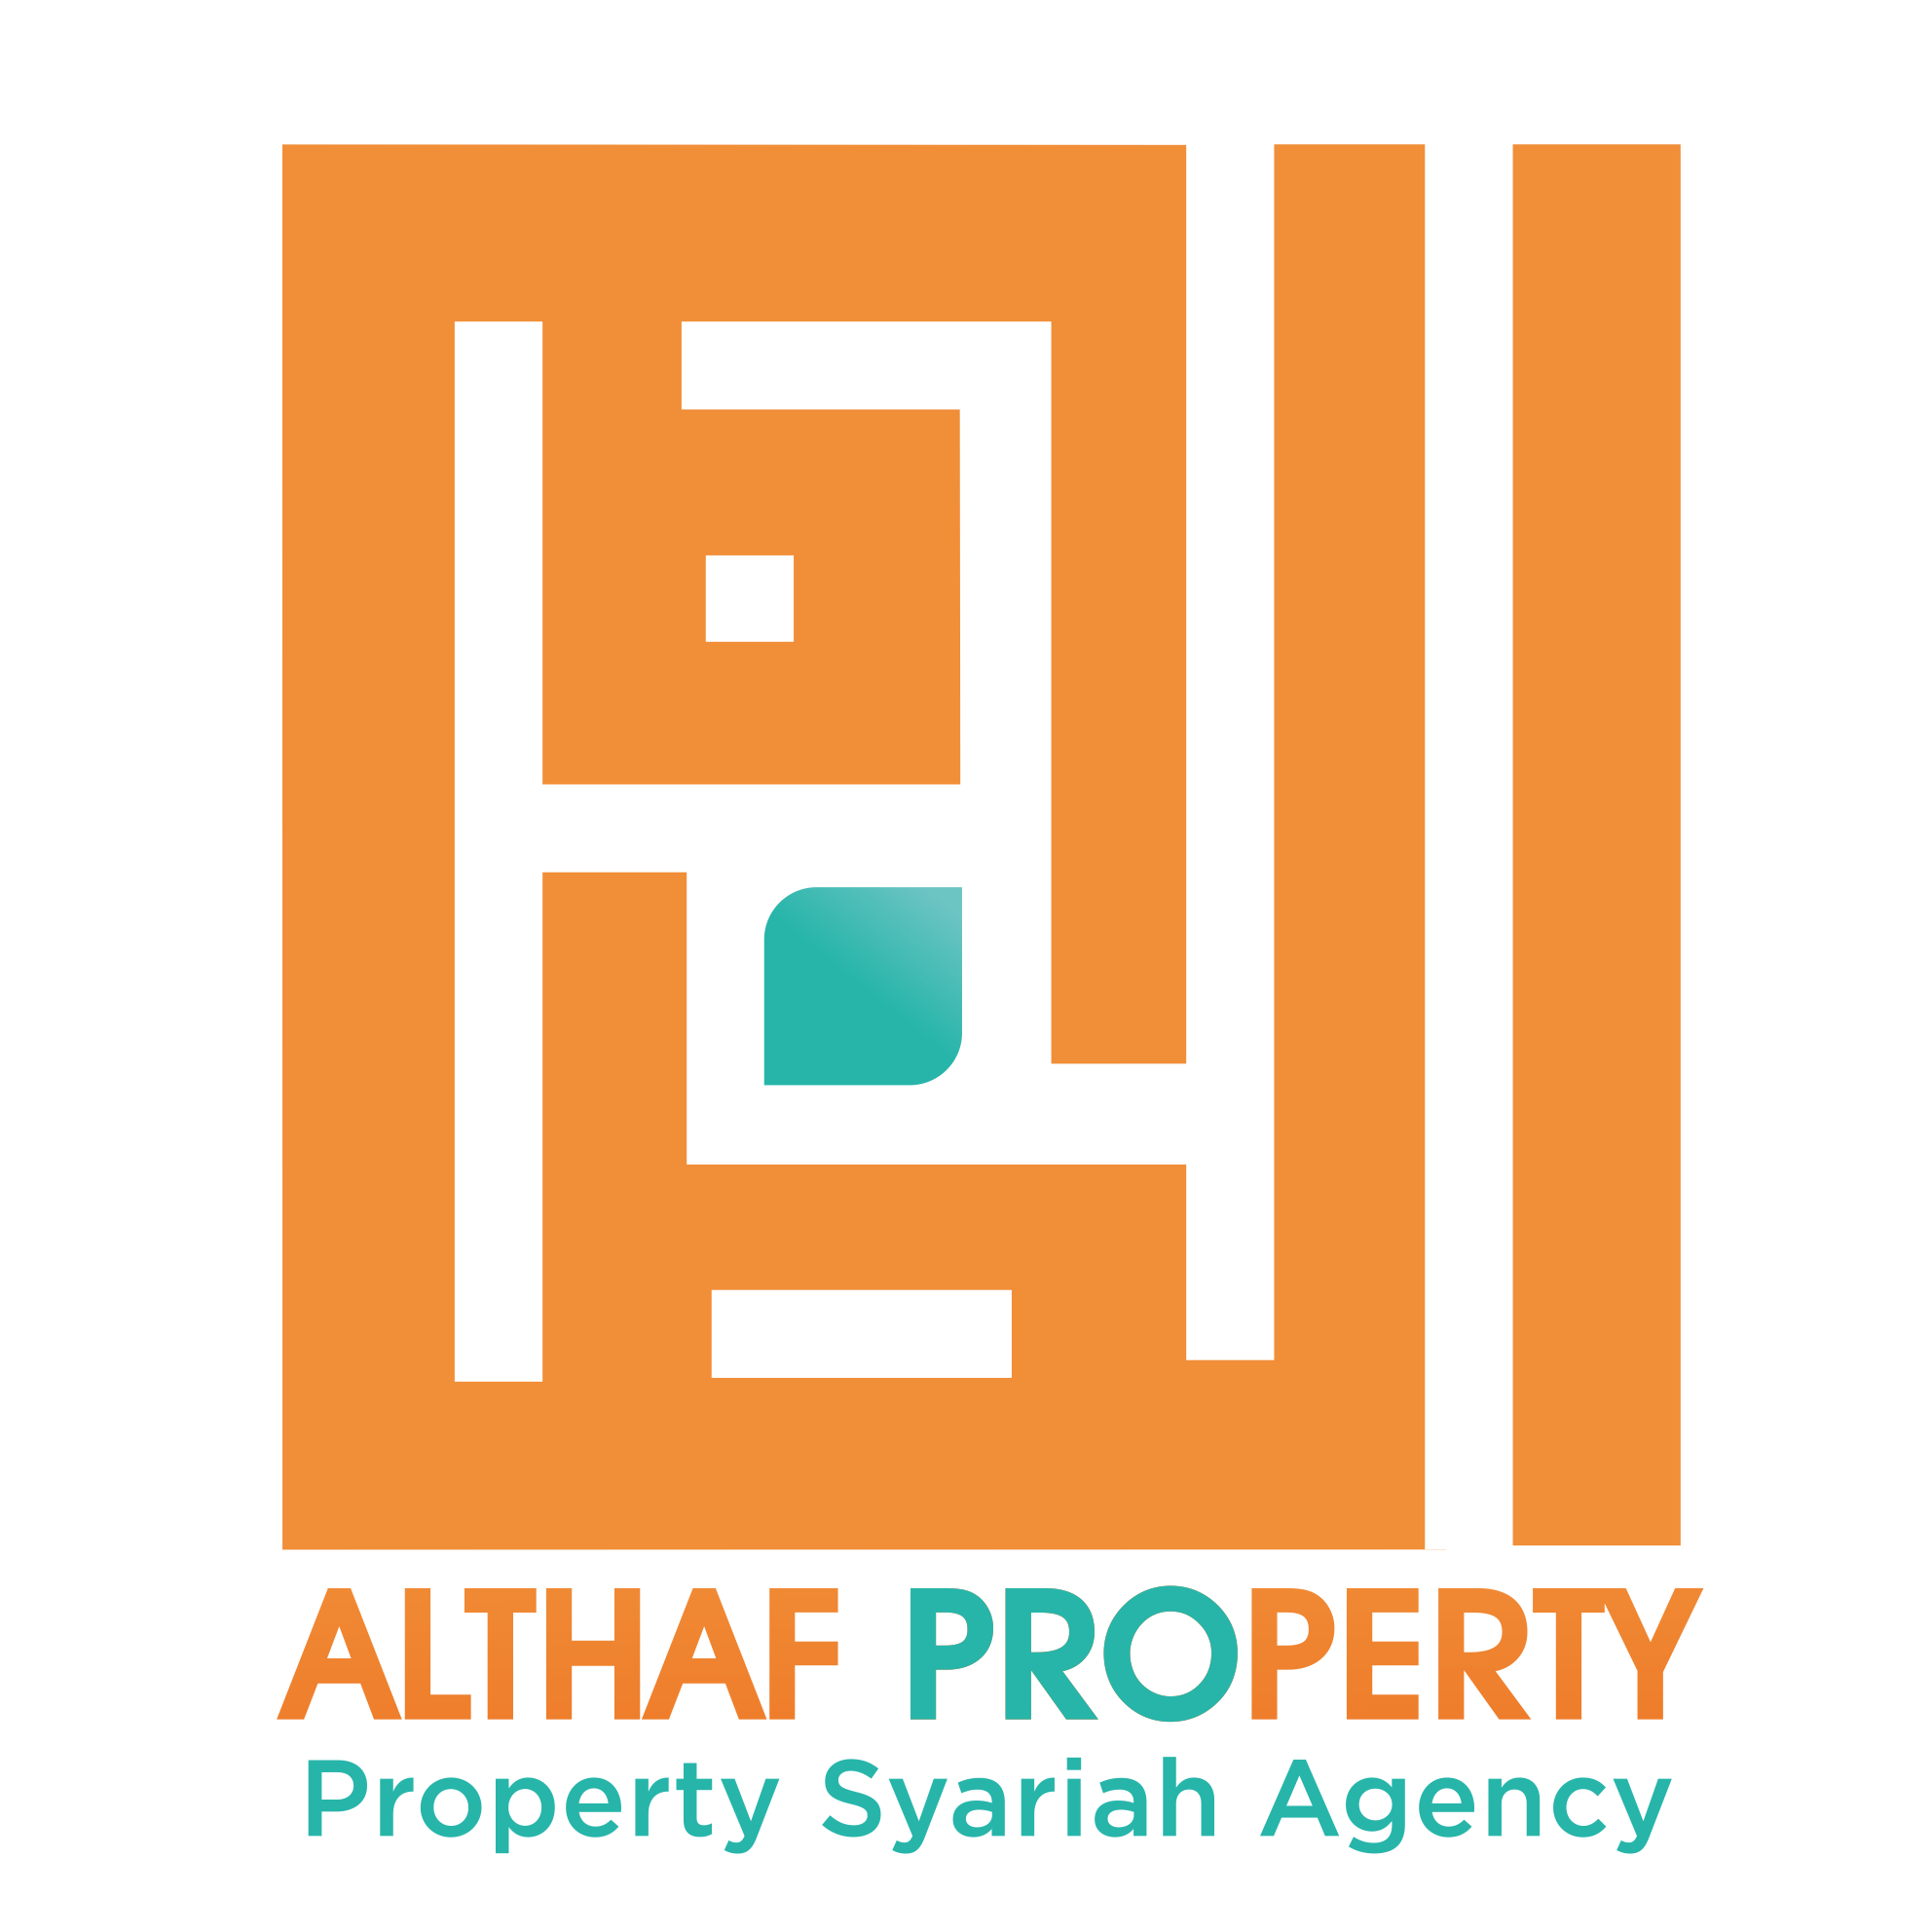 Althaf Property